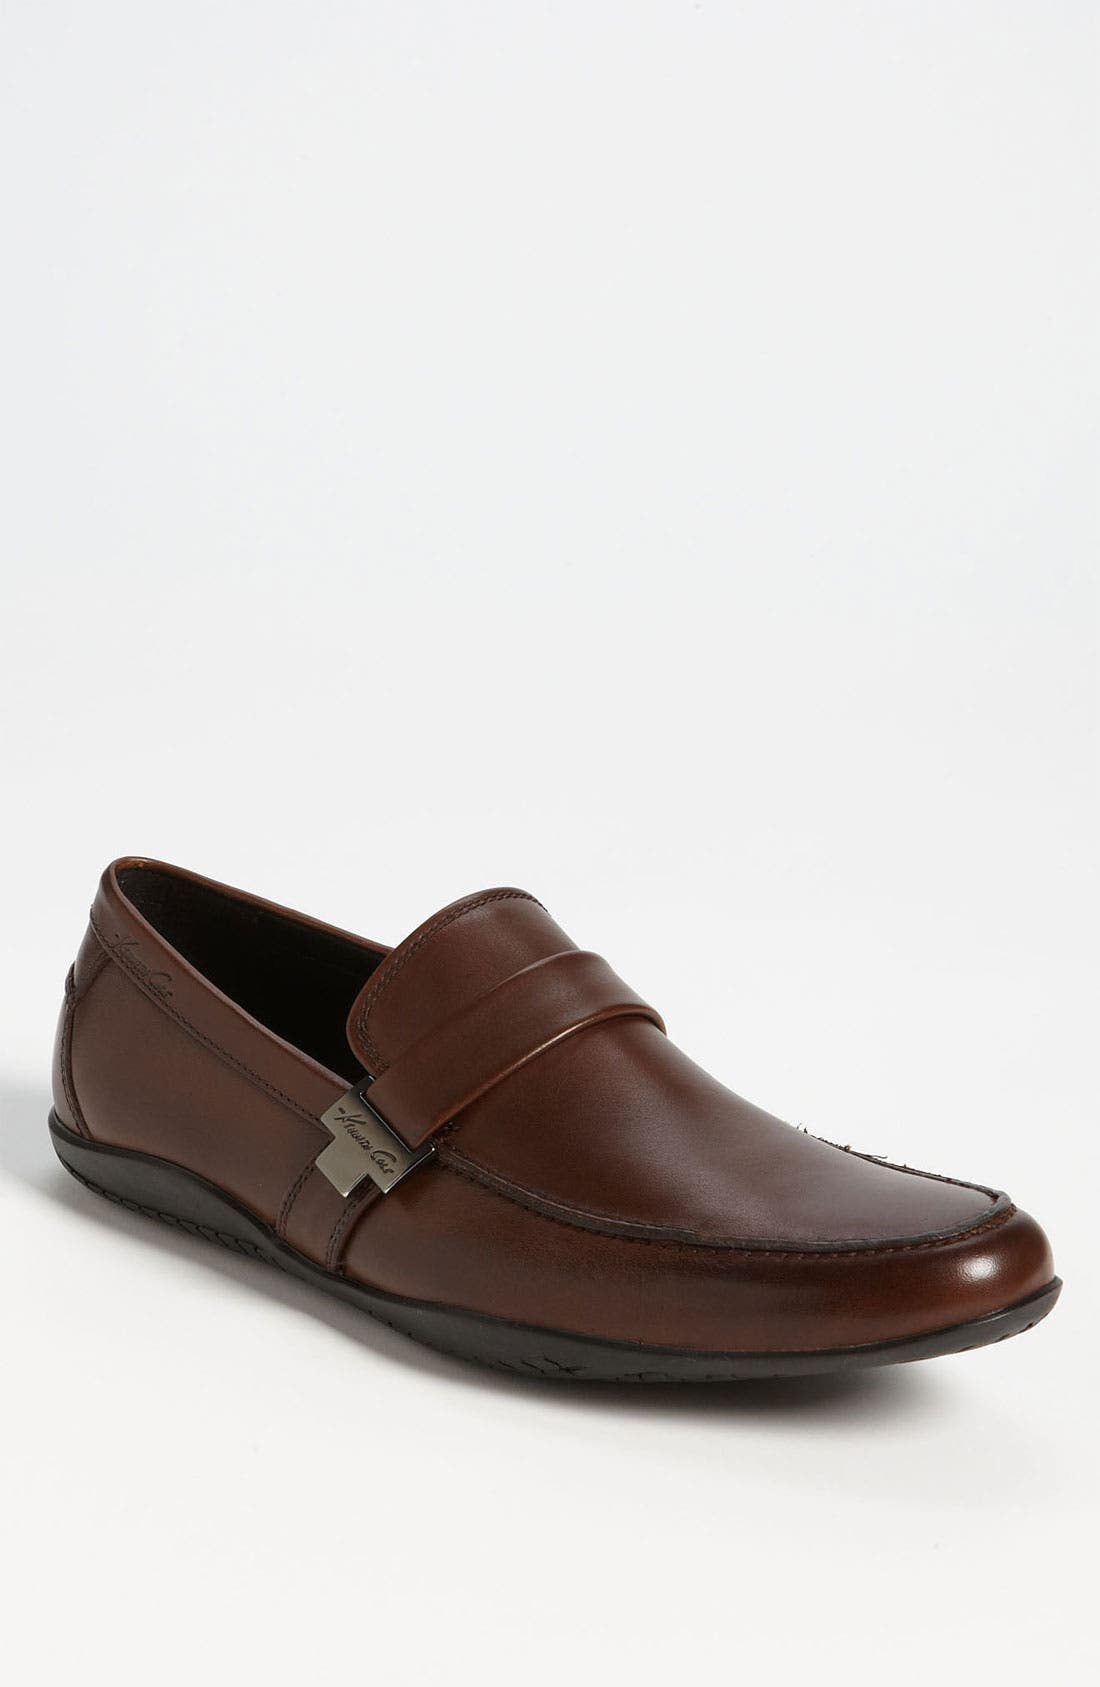 Main Image - Kenneth Cole New York 'Homeword' Loafer